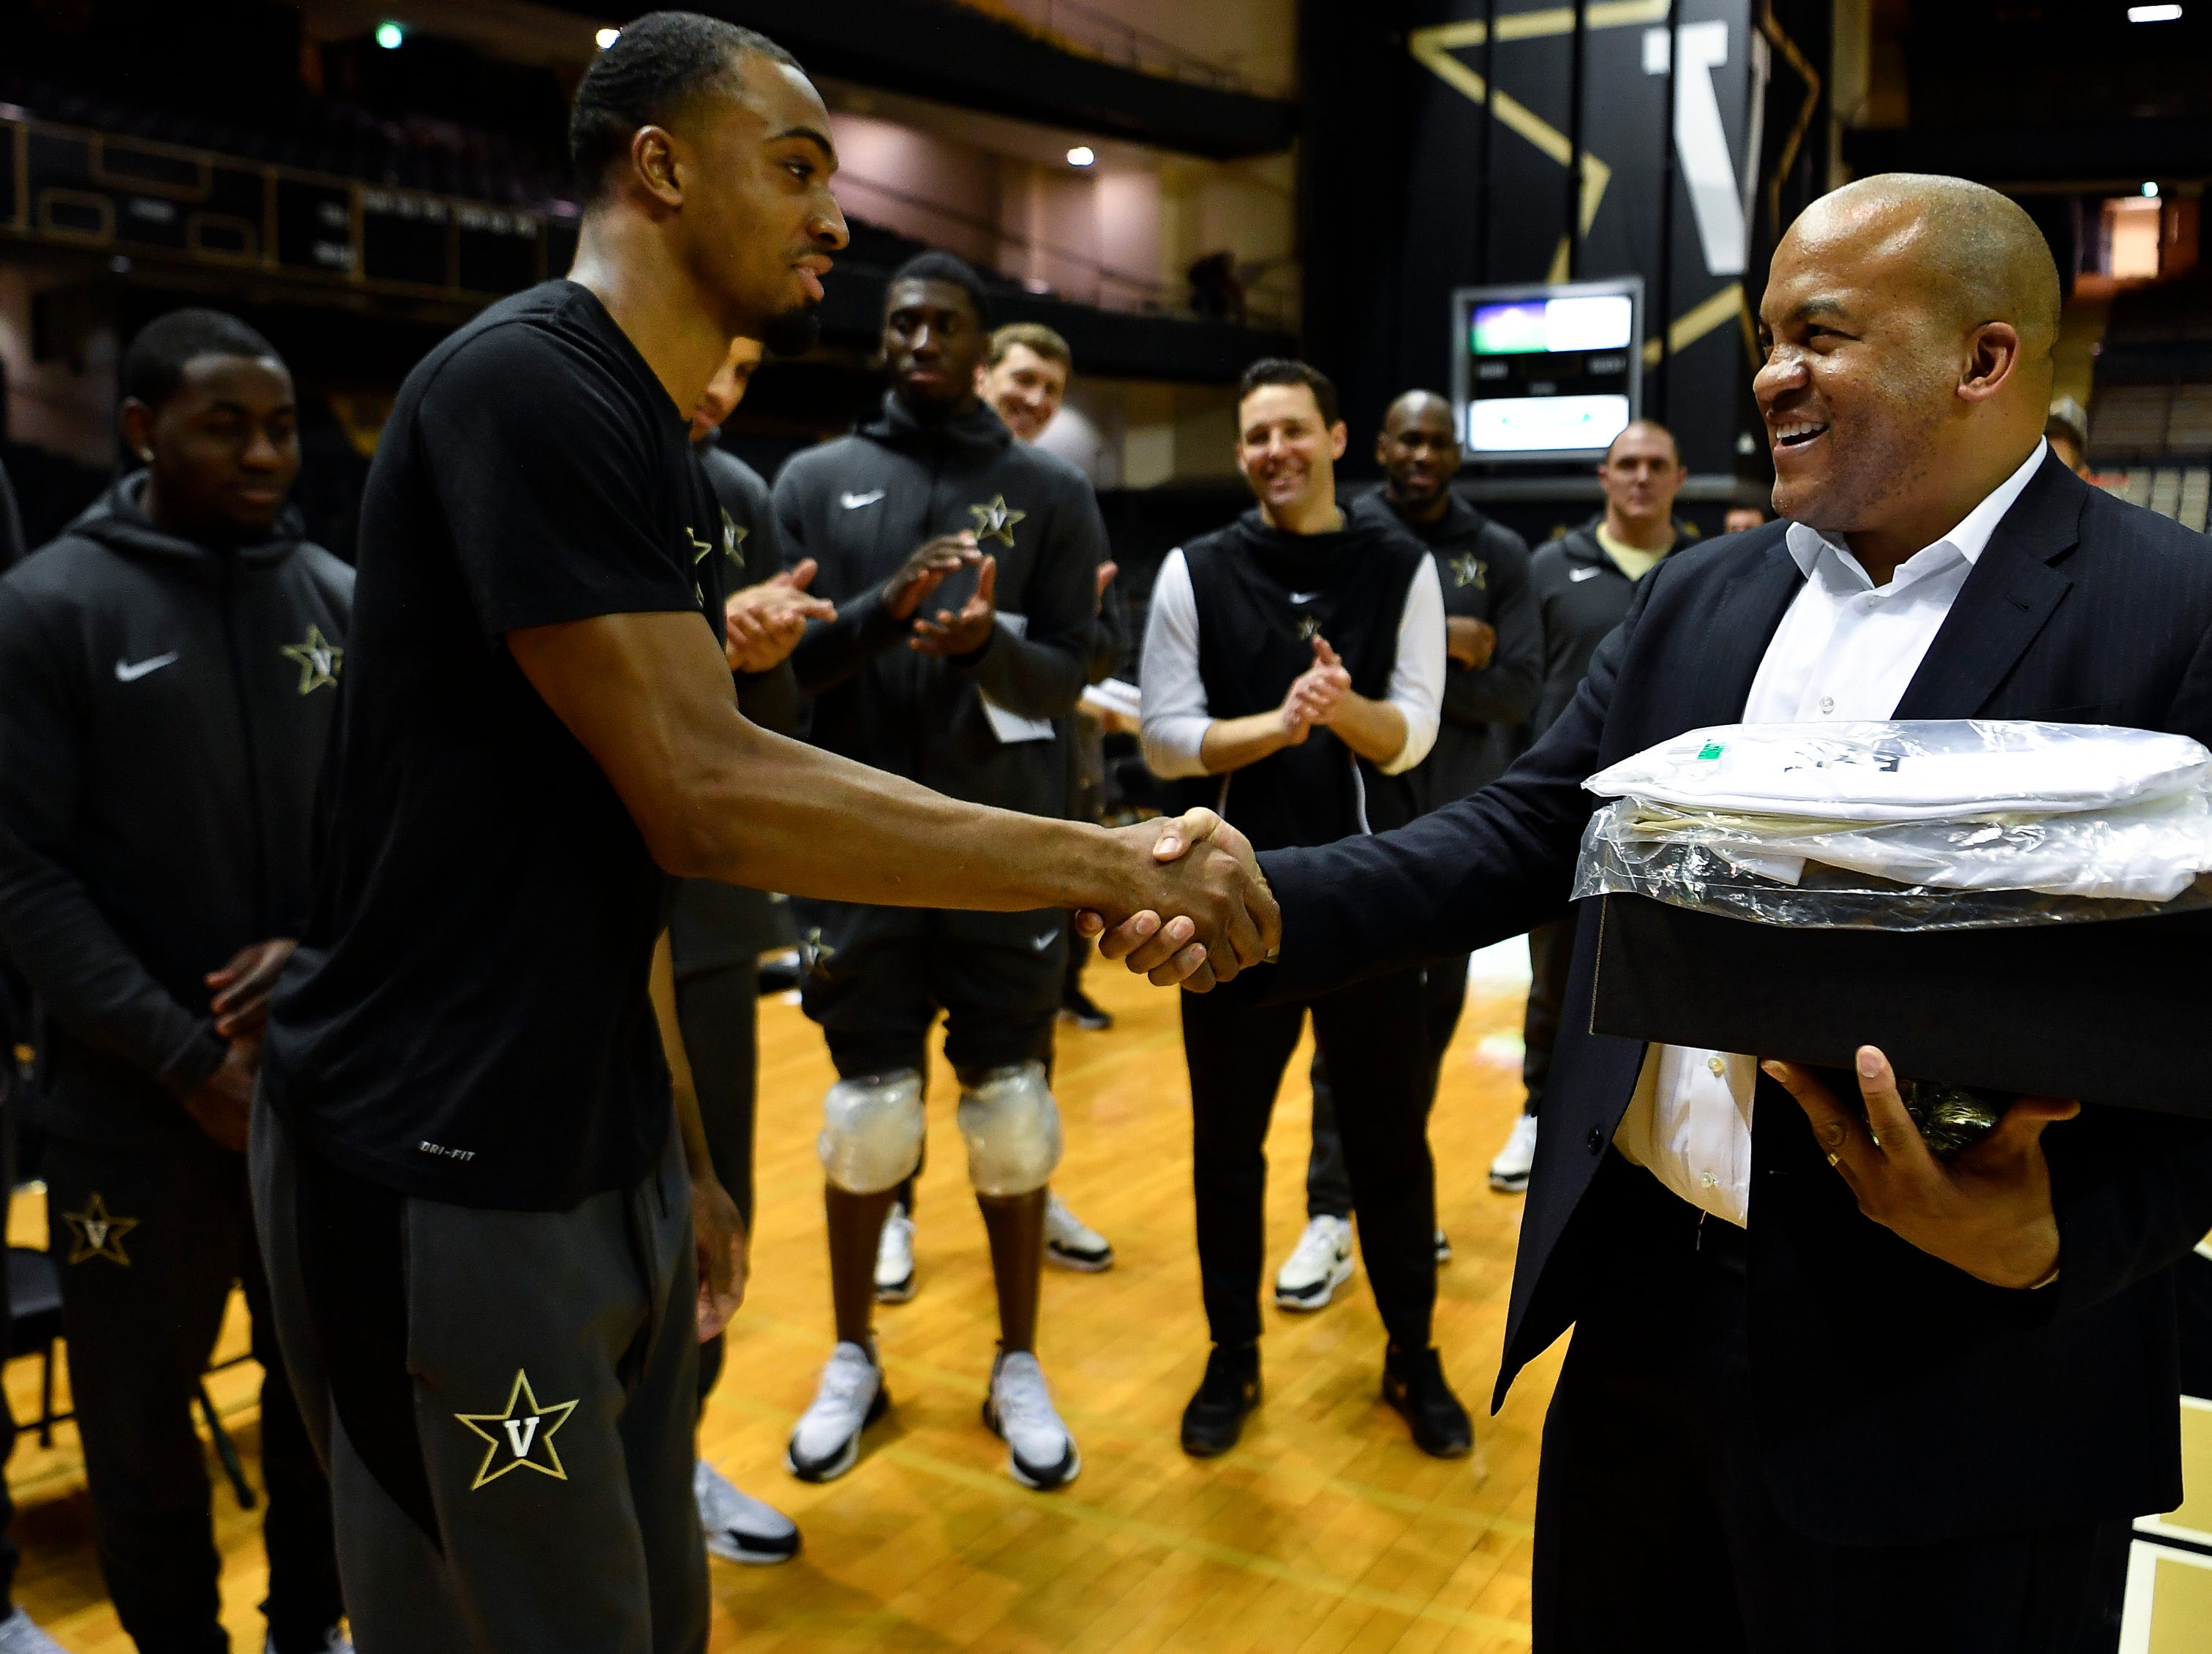 Vanderbilt guard Joe Toye presents new athletic director Malcolm Turner with gifts from the basketball team as he visits different athletic programs during his first day on campus Friday Feb. 1, 2019 in Nashville, Tenn.